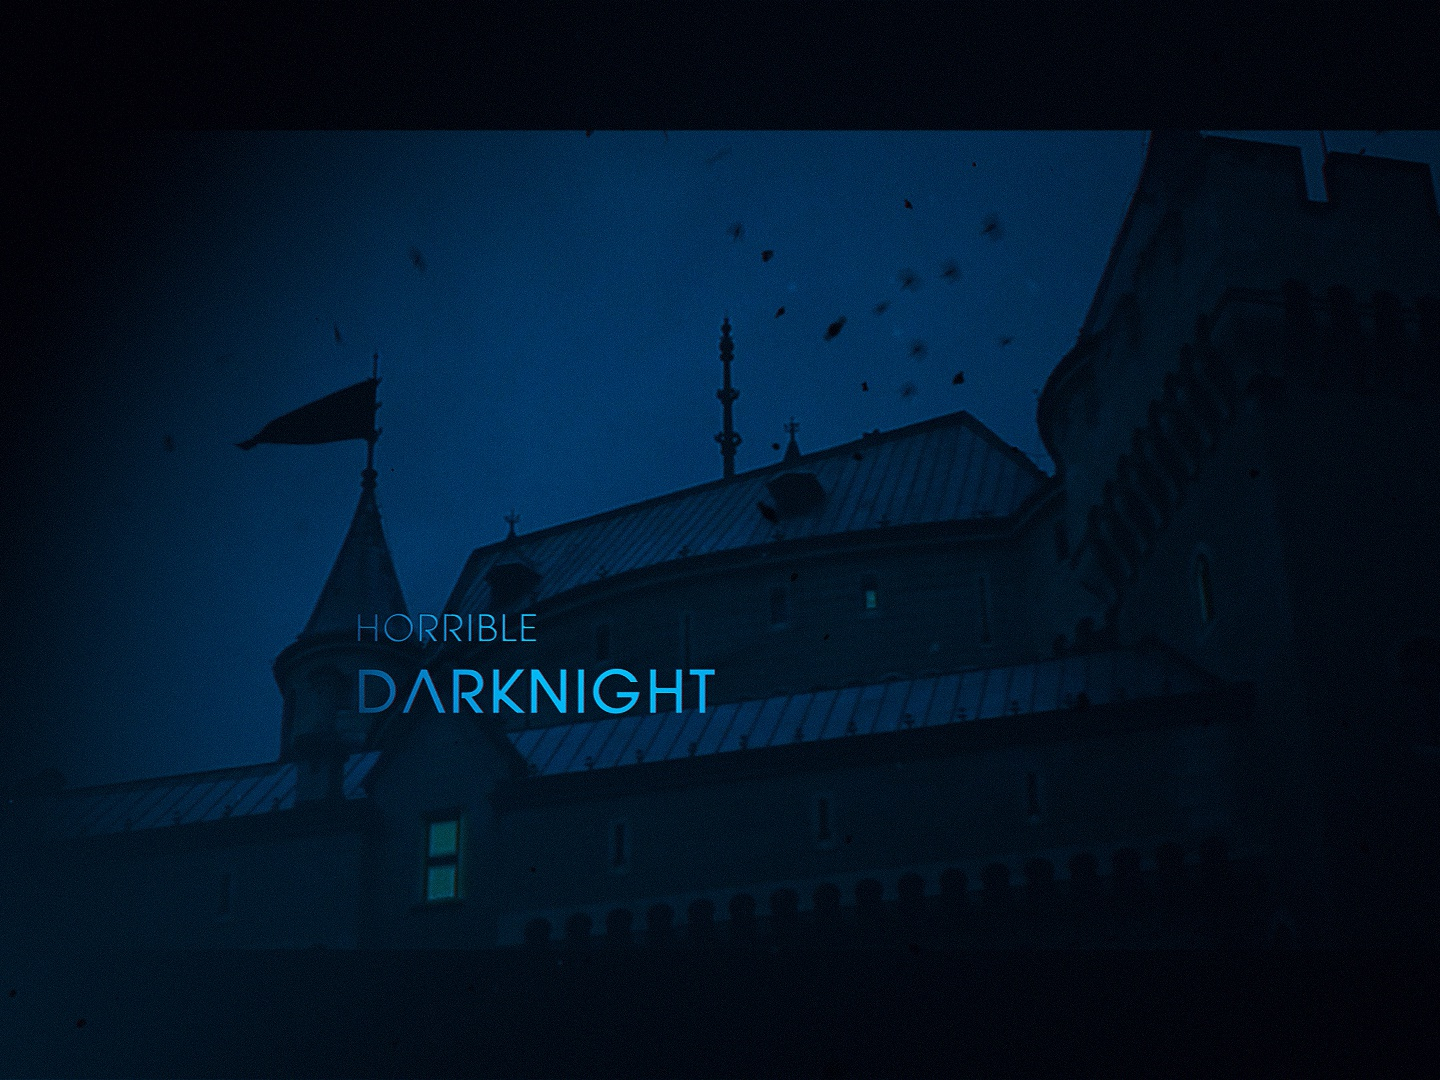 Horrible Darknight - After Effects Project File zombie vampire spy searchlight opener main title latency intro horror gloomy epic detective crisis american drama amc